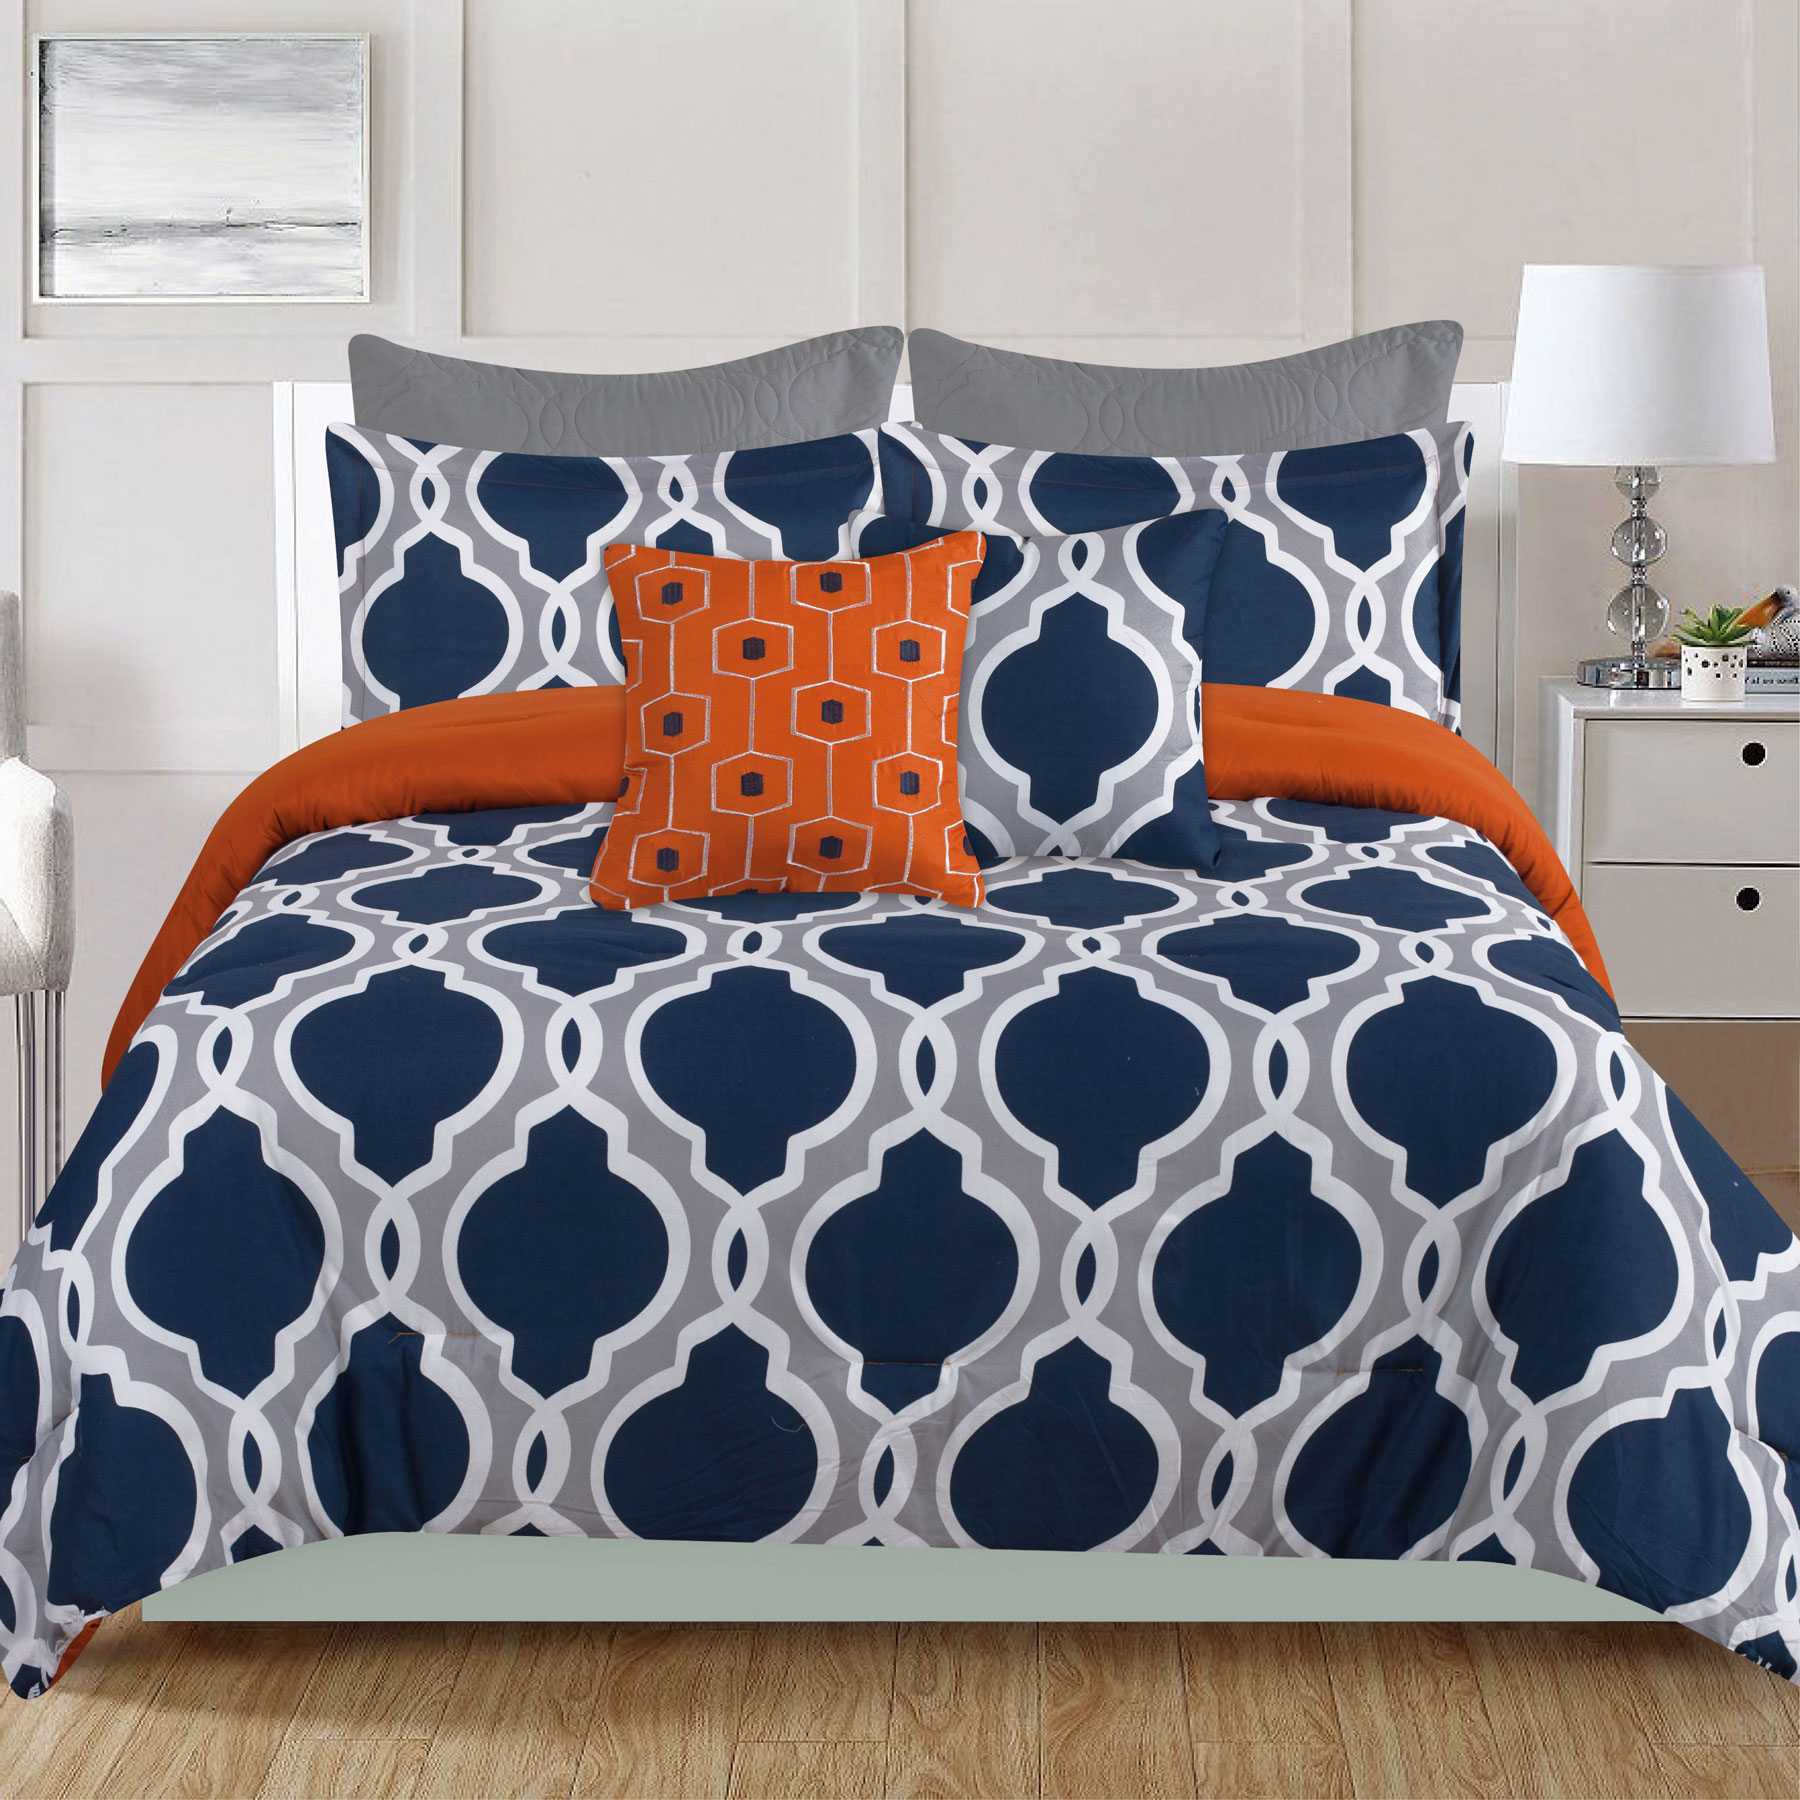 queen comforter 7 piece bedding set navy blue and gray quatrefoil with orange